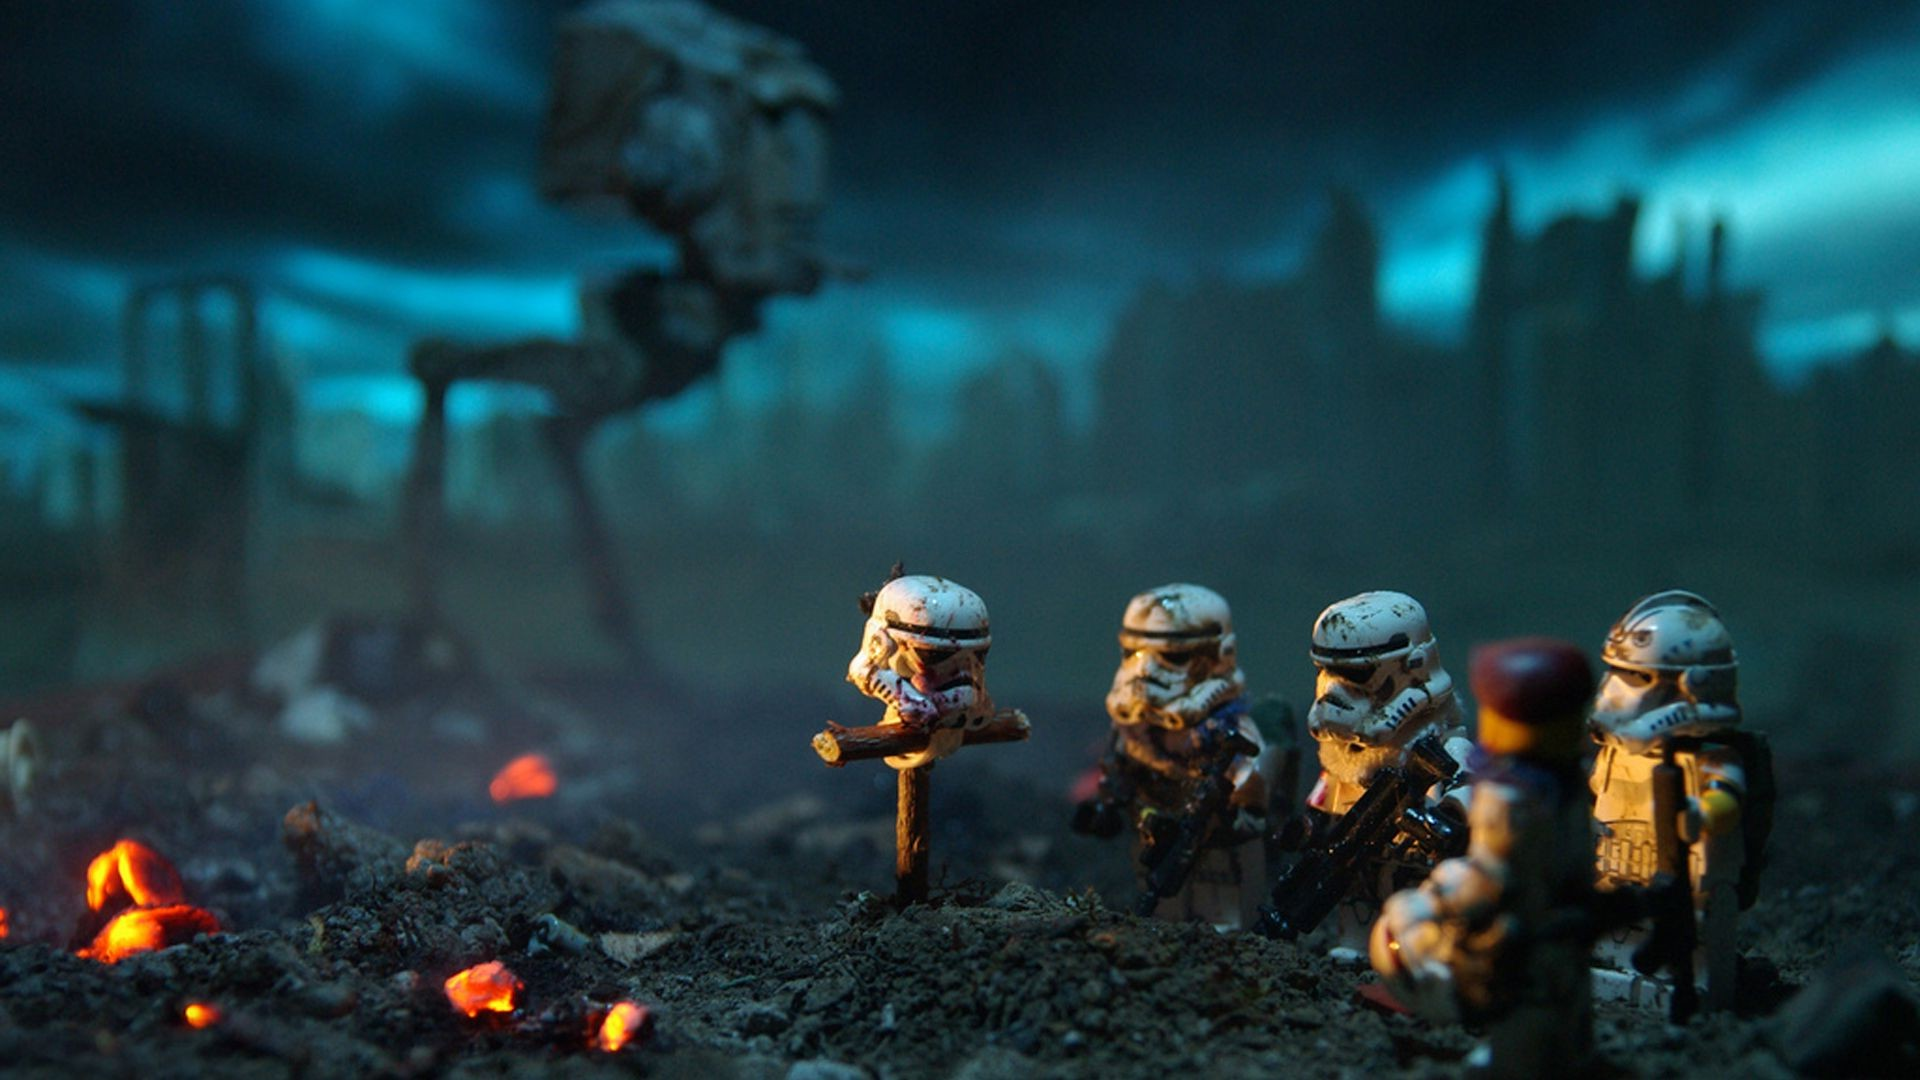 lego star wars wallpapers (42 wallpapers) – adorable wallpapers